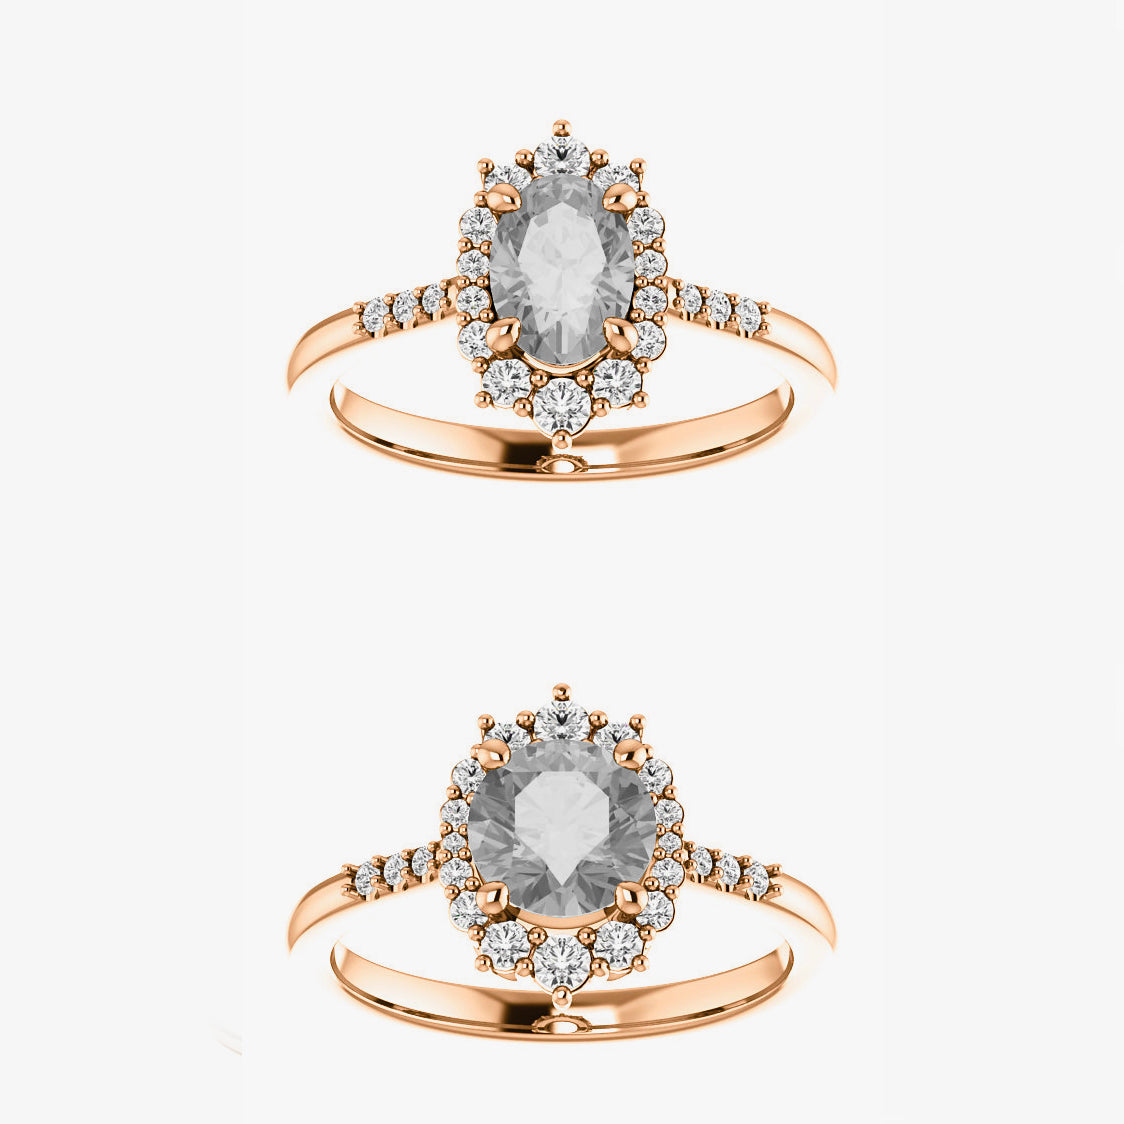 Grace Setting - Salt & Pepper Celestial Diamond Engagement Rings and Wedding Bands  by Midwinter Co.